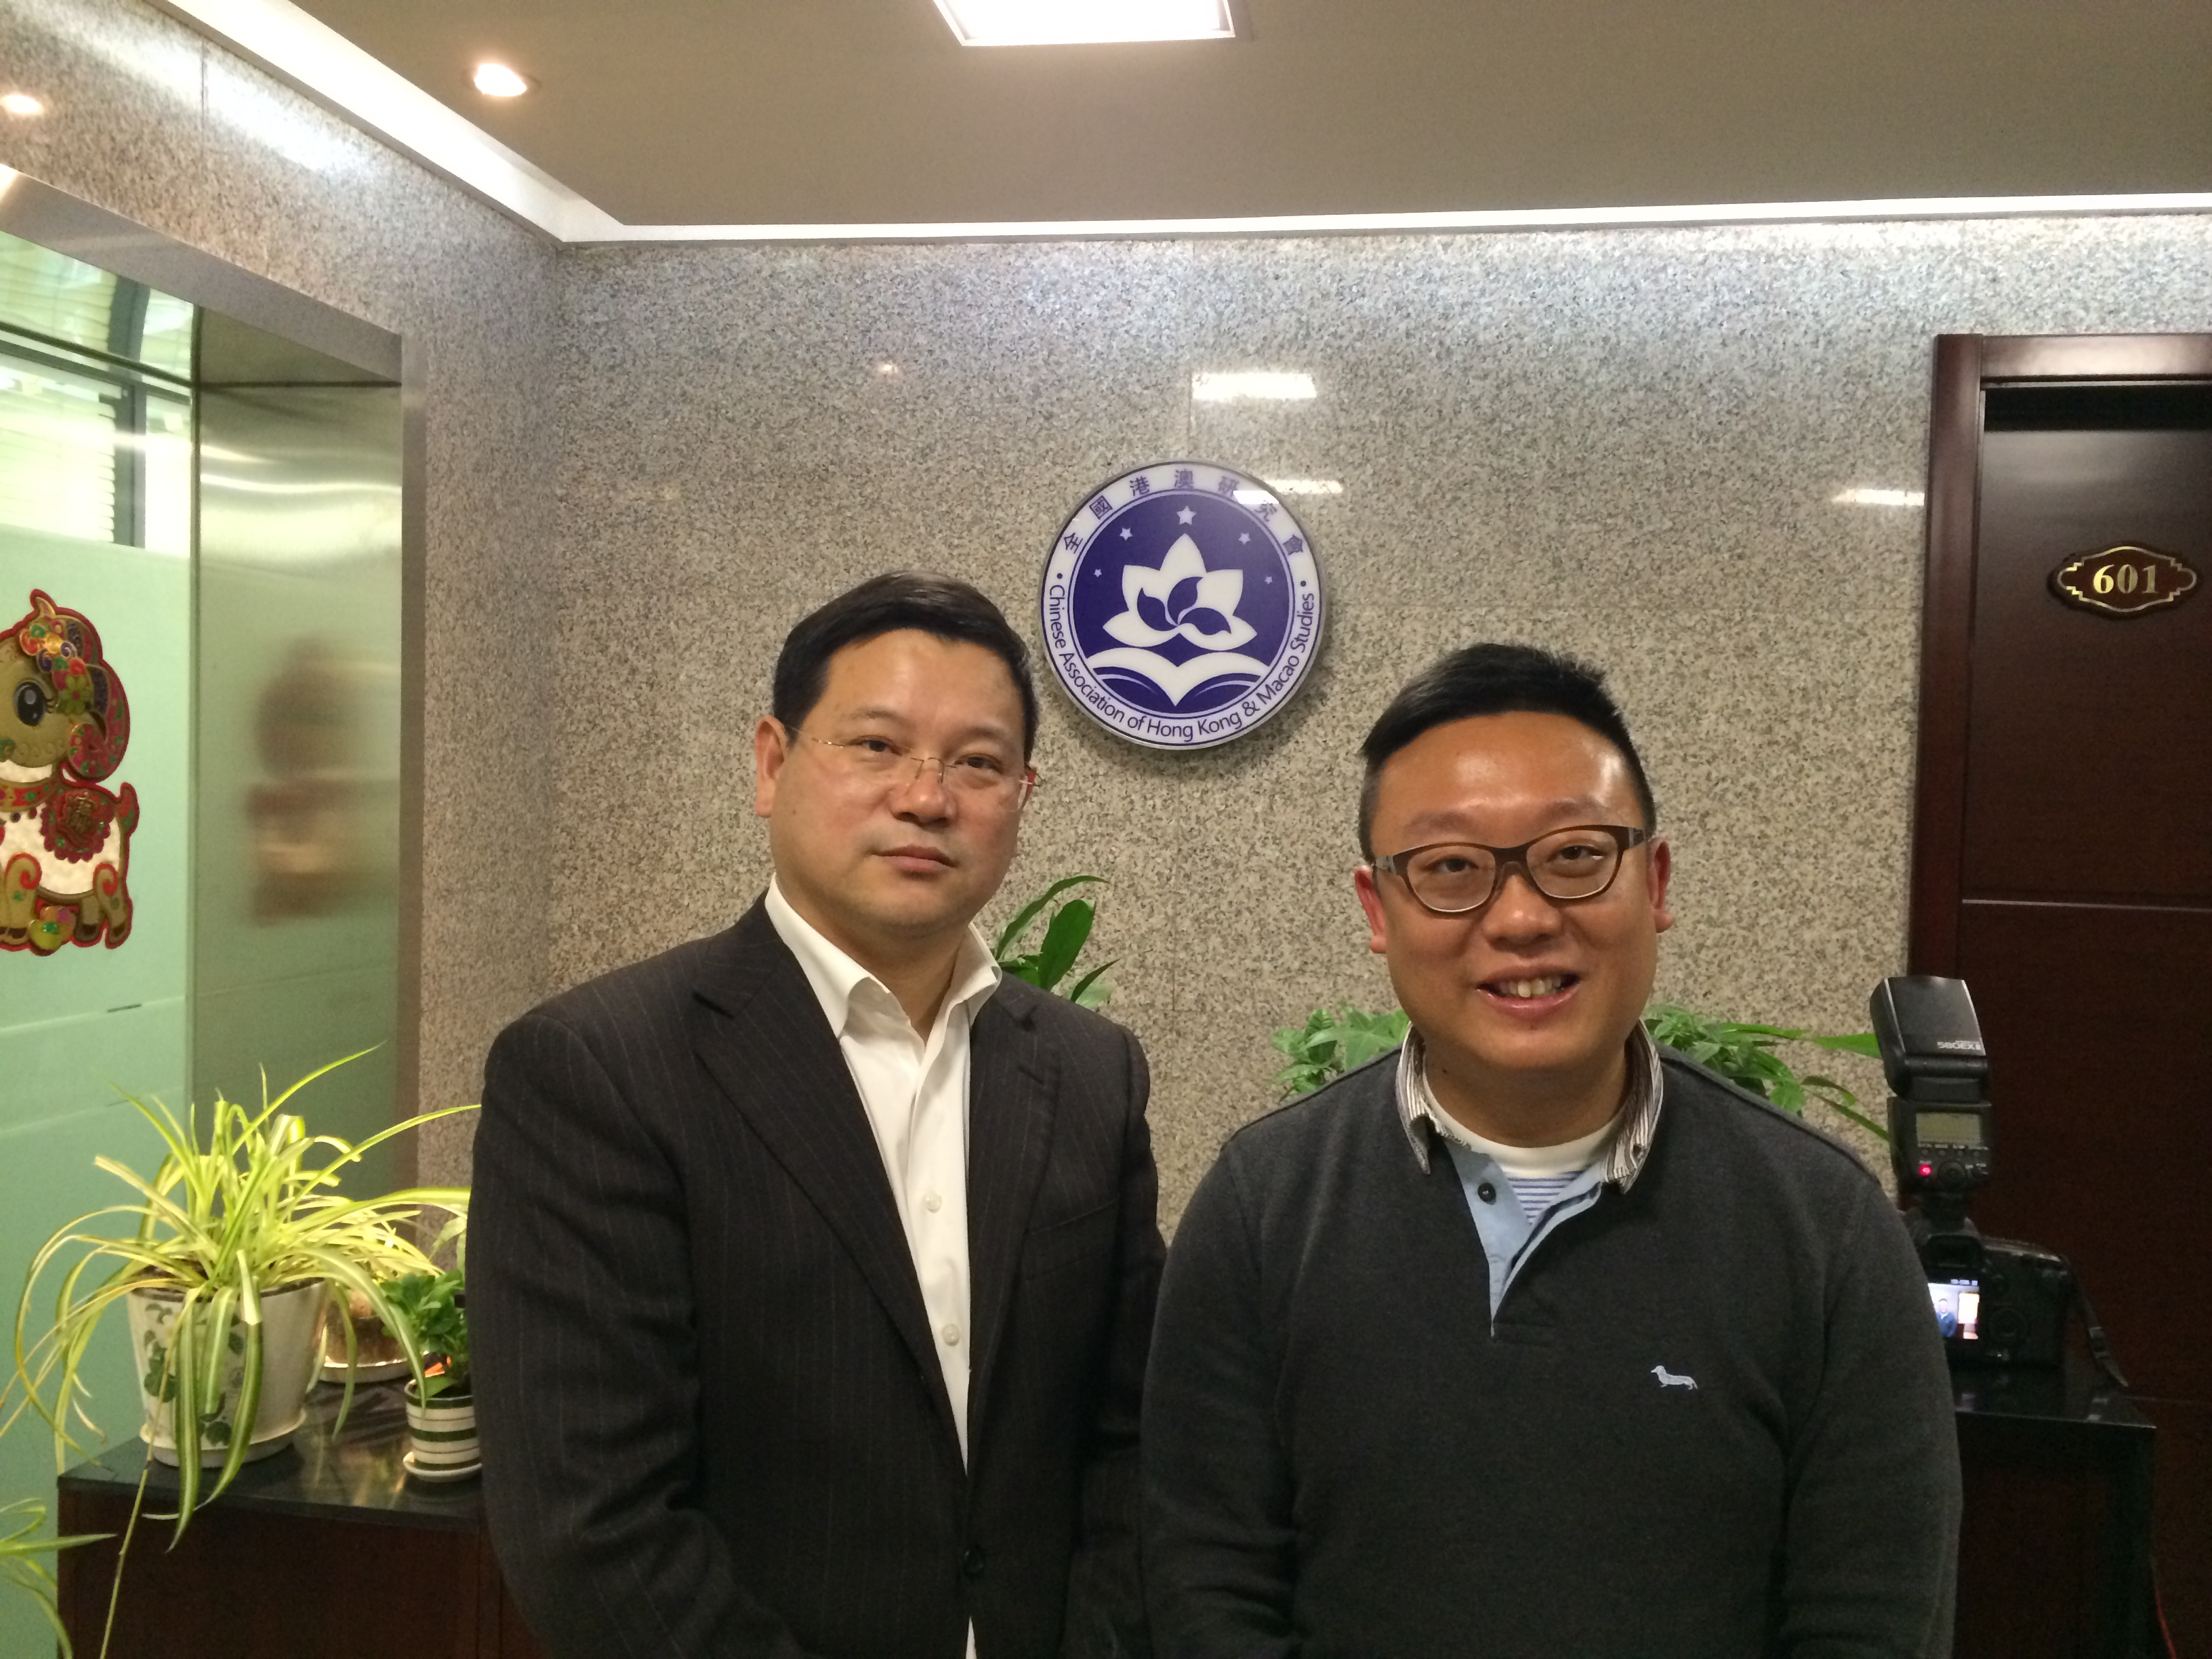 Visit to the Headquarter of Chinese Association of Hong Kong & Macao Studies